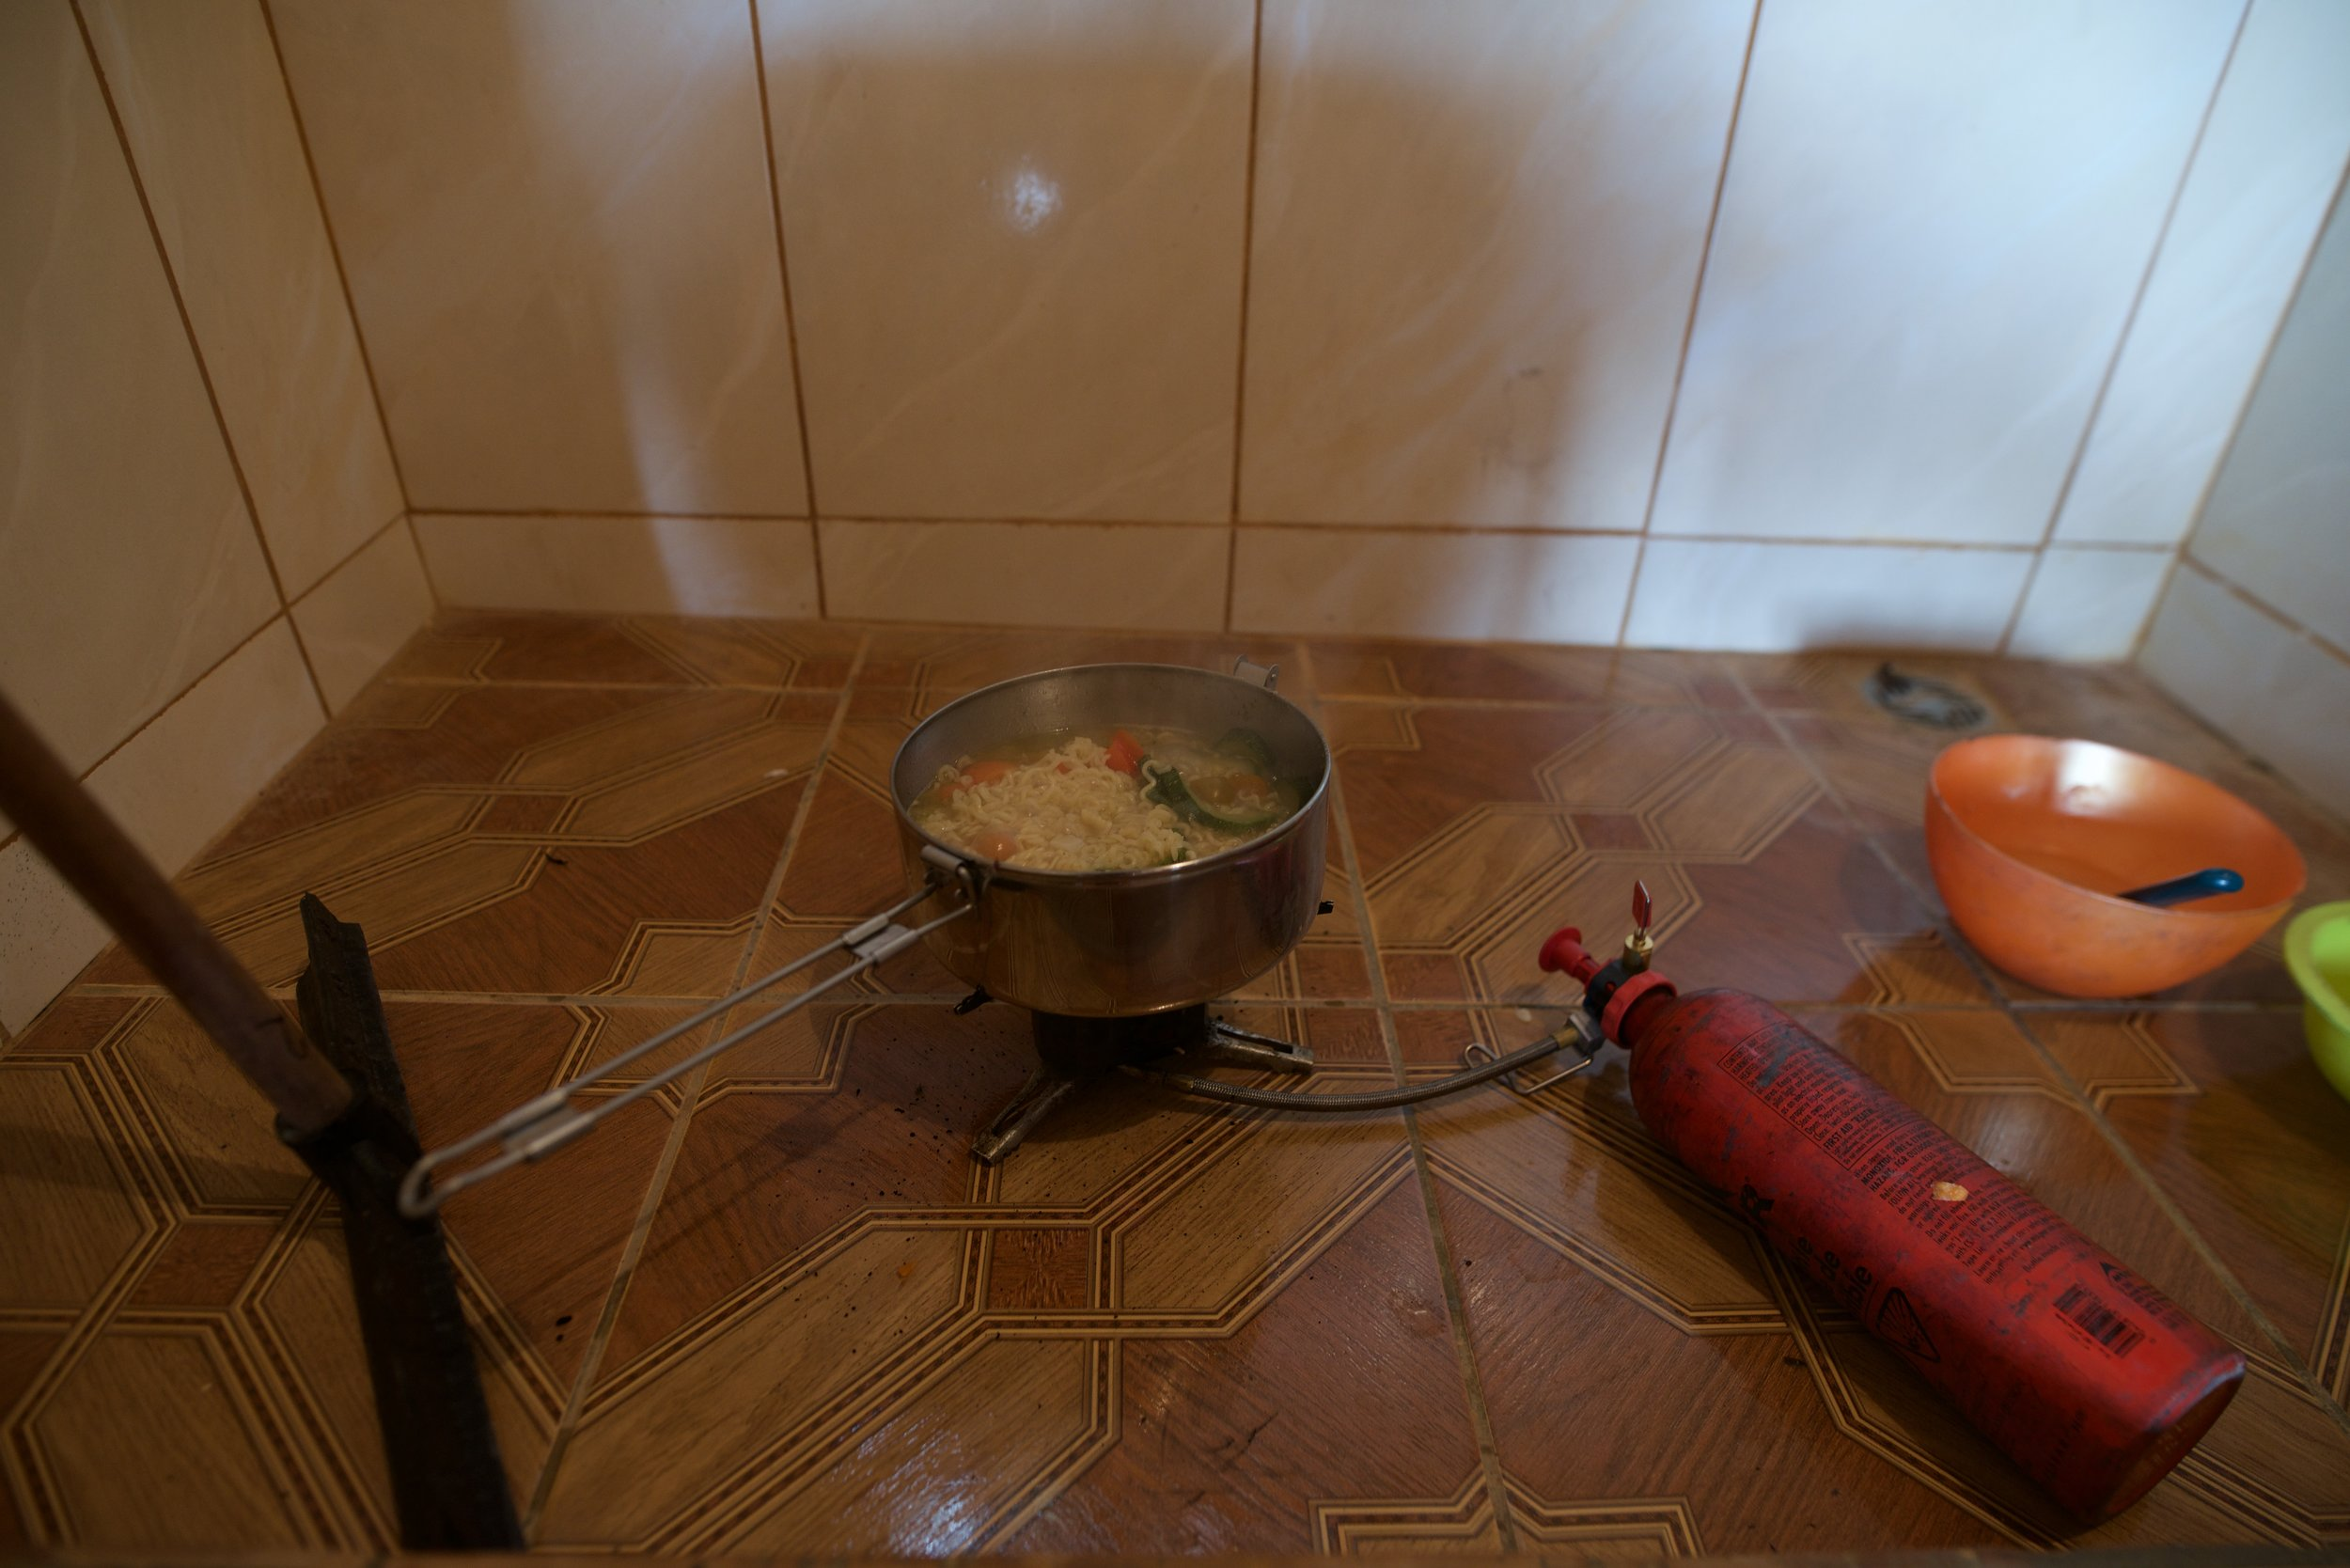 Cooking in the shower in Bolivia. I used a  XGK EX  stove from MSR for a decade without a single issue: Literally the best prepper/overlander stove on the market. I used all kinds of fuel. Never costed me more than a dollar a week to cook as much as I want. The best $200CAD ever spent.